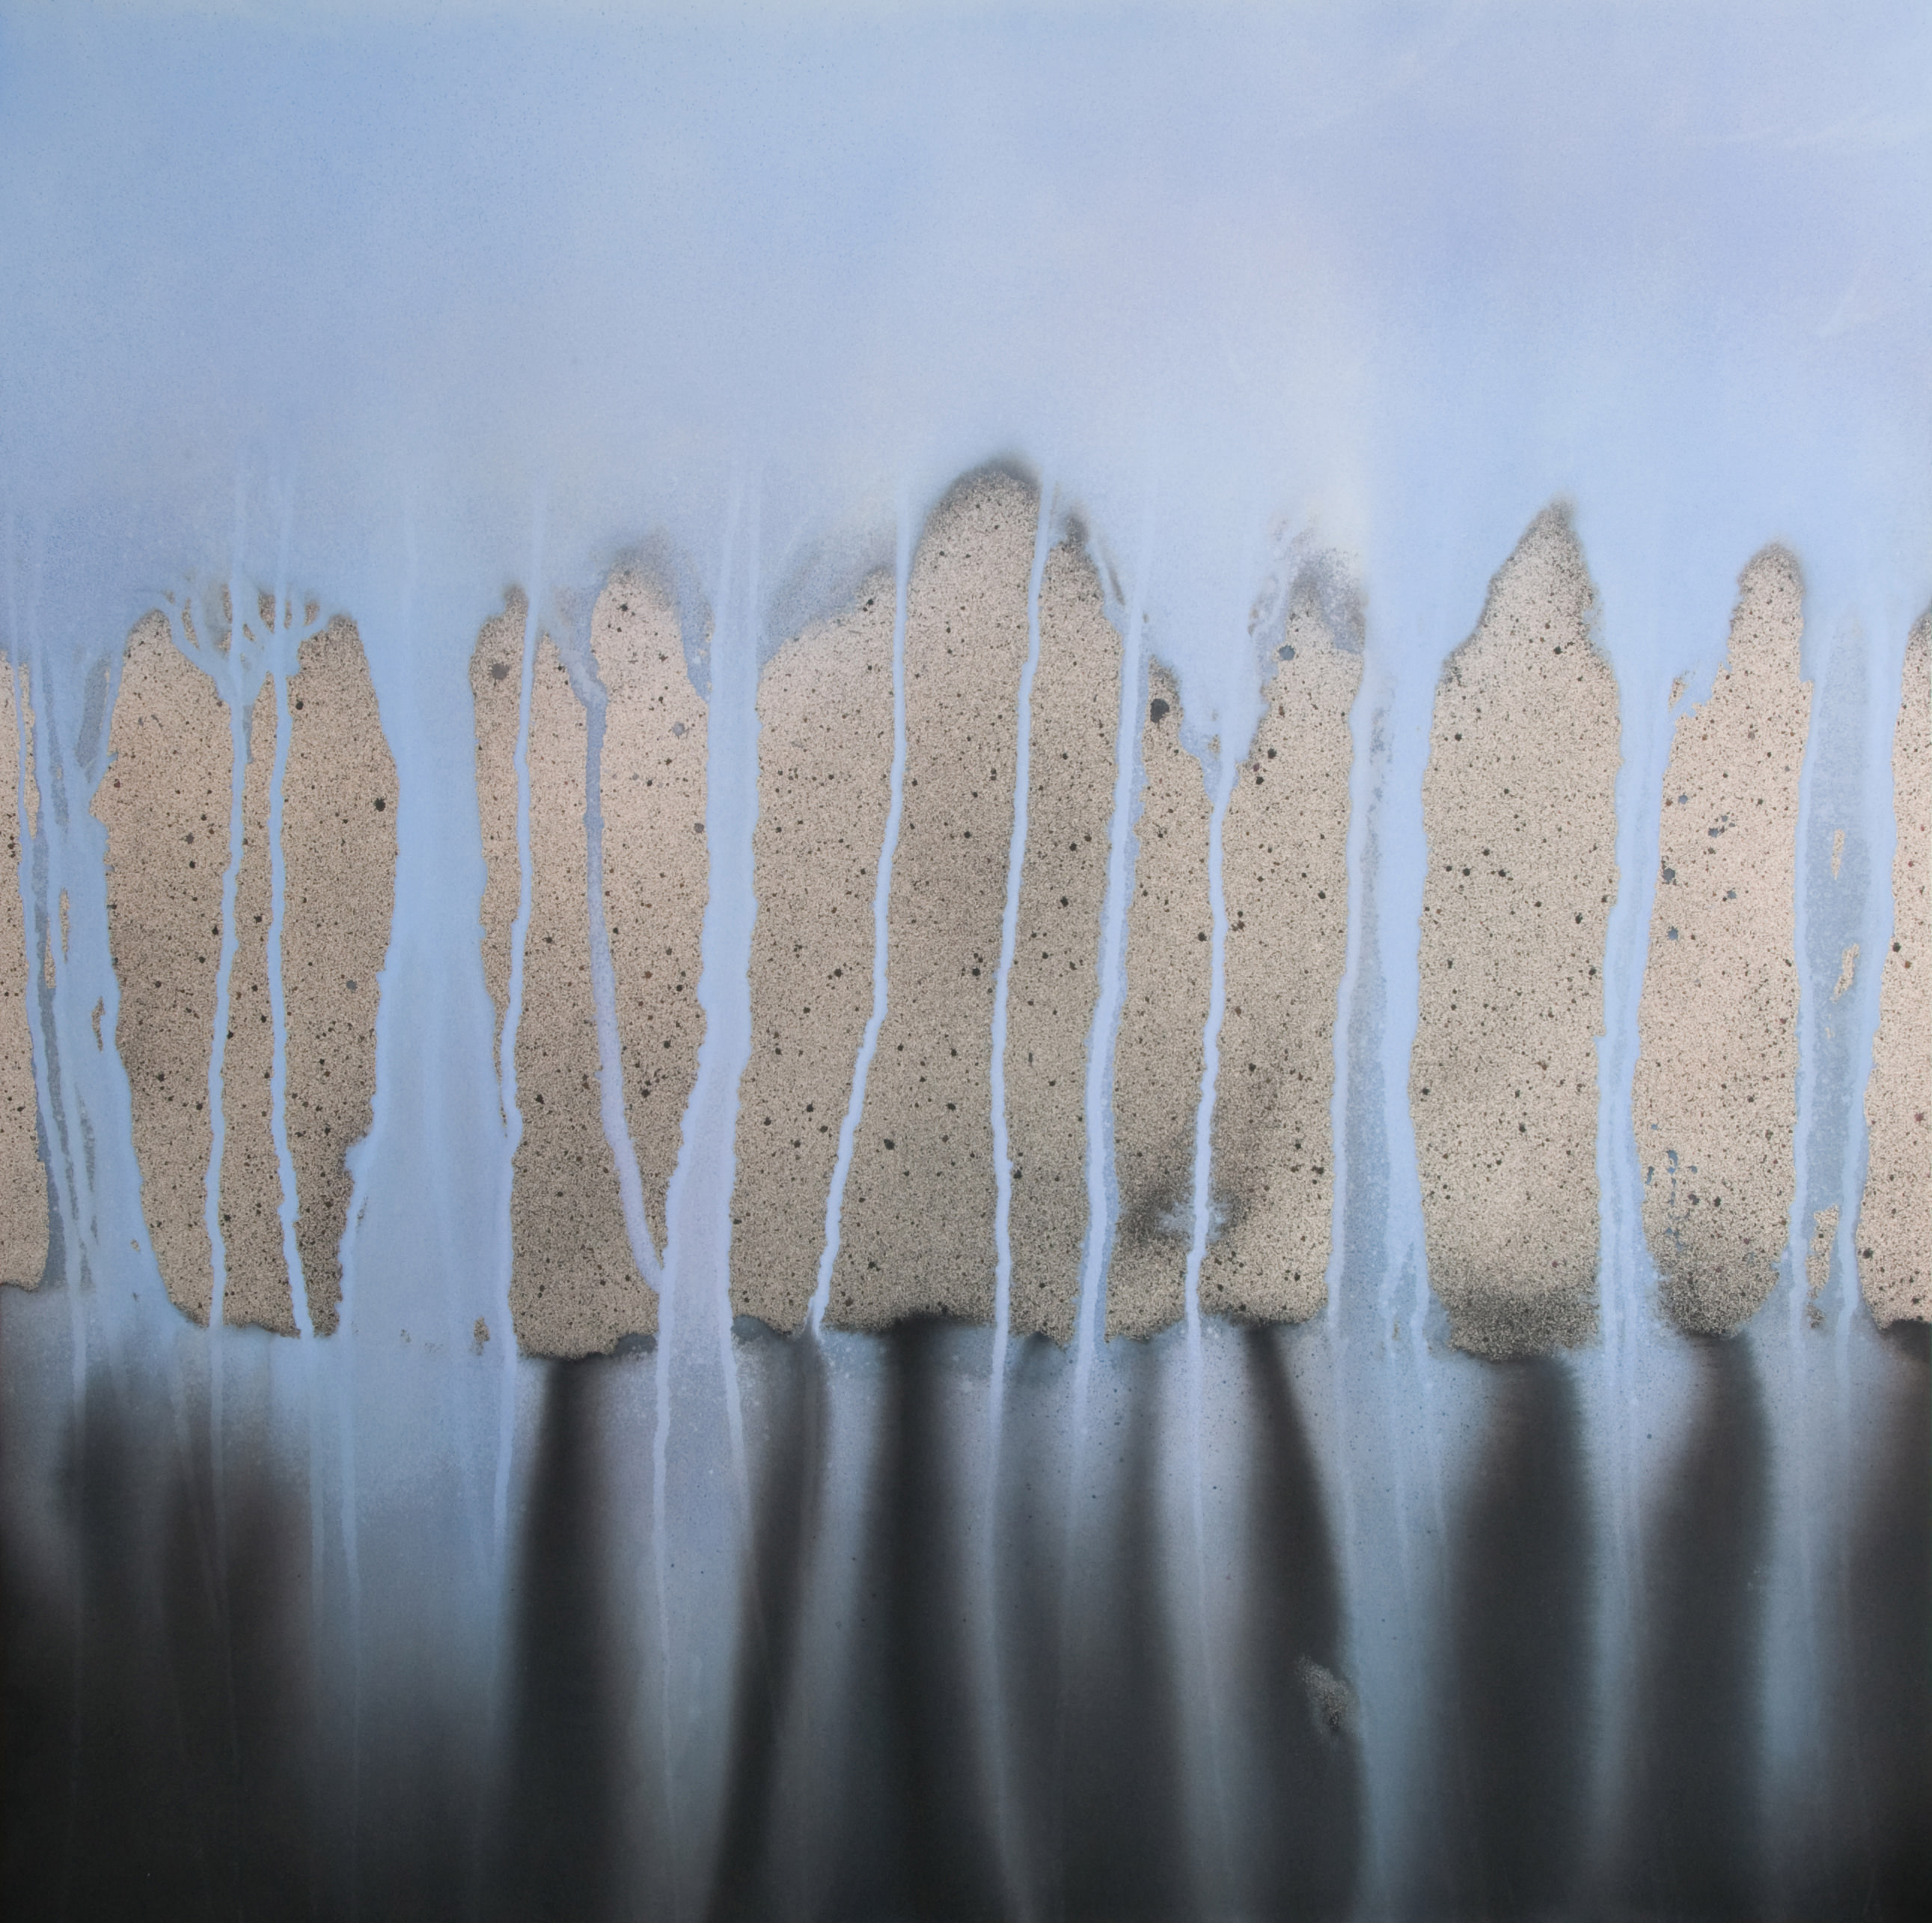 Essence | 71 x 71 inches | paint on canvas